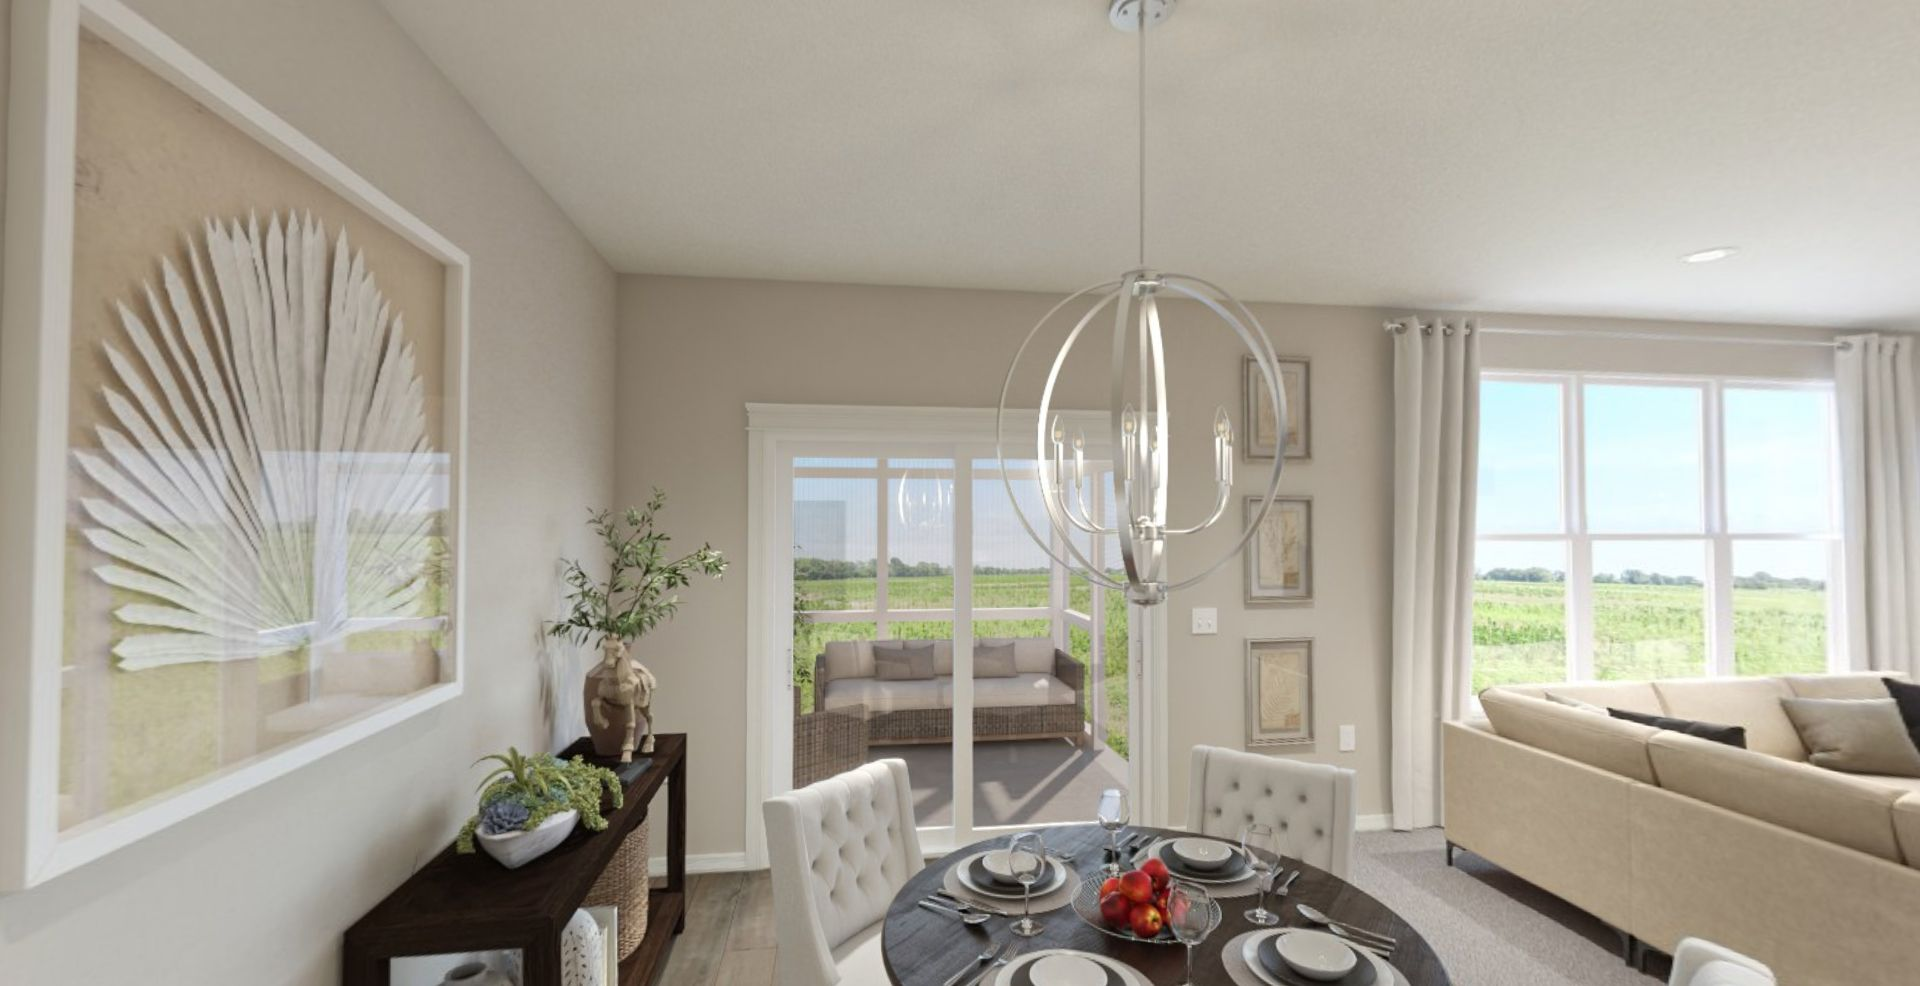 Kitchen featured in the Sonata By Olthof Homes in Indianapolis, IN